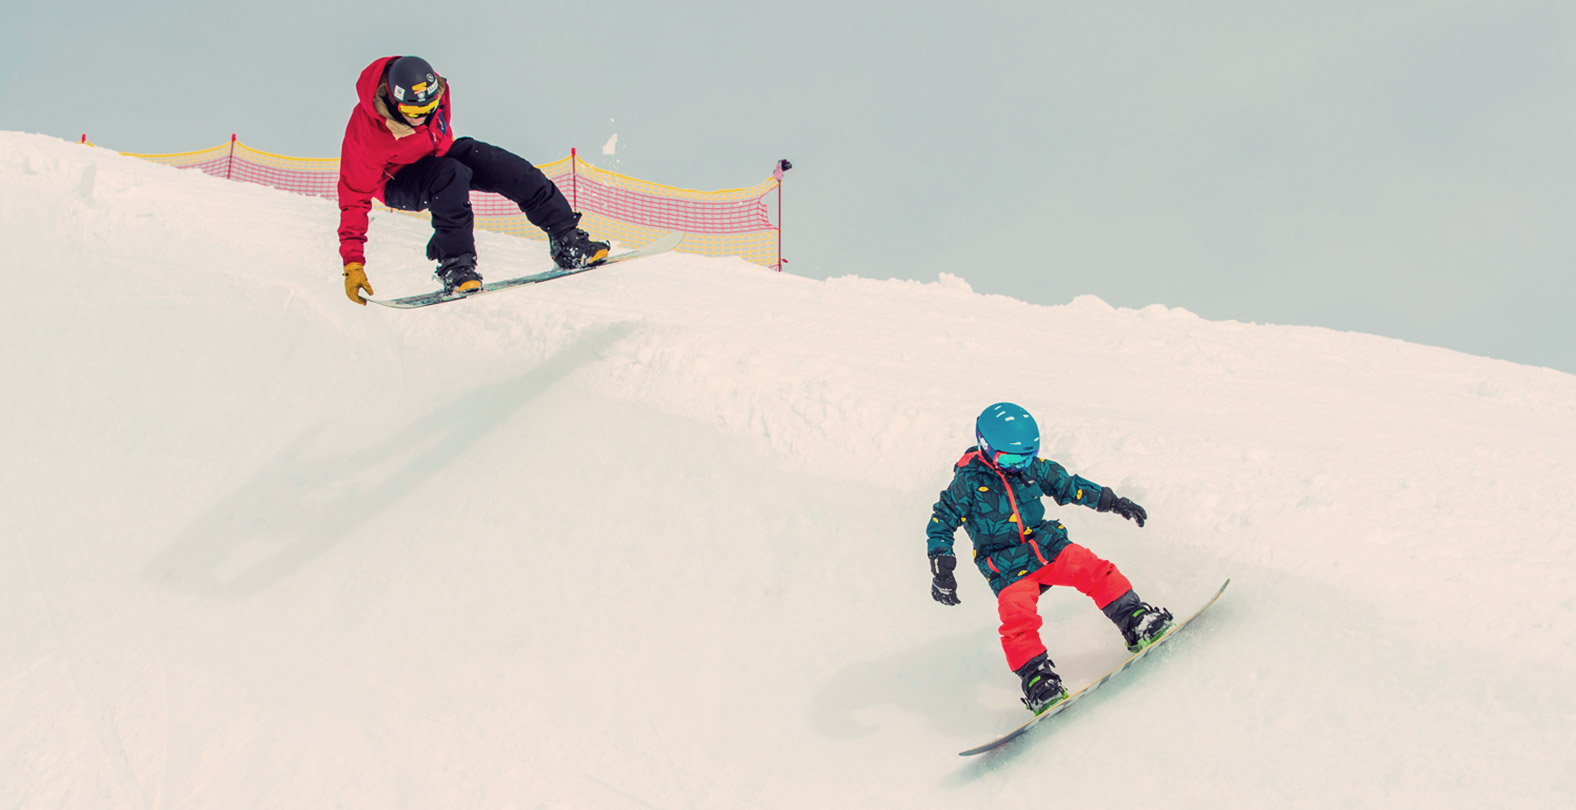 Gian Simmen snowboarding with his kids